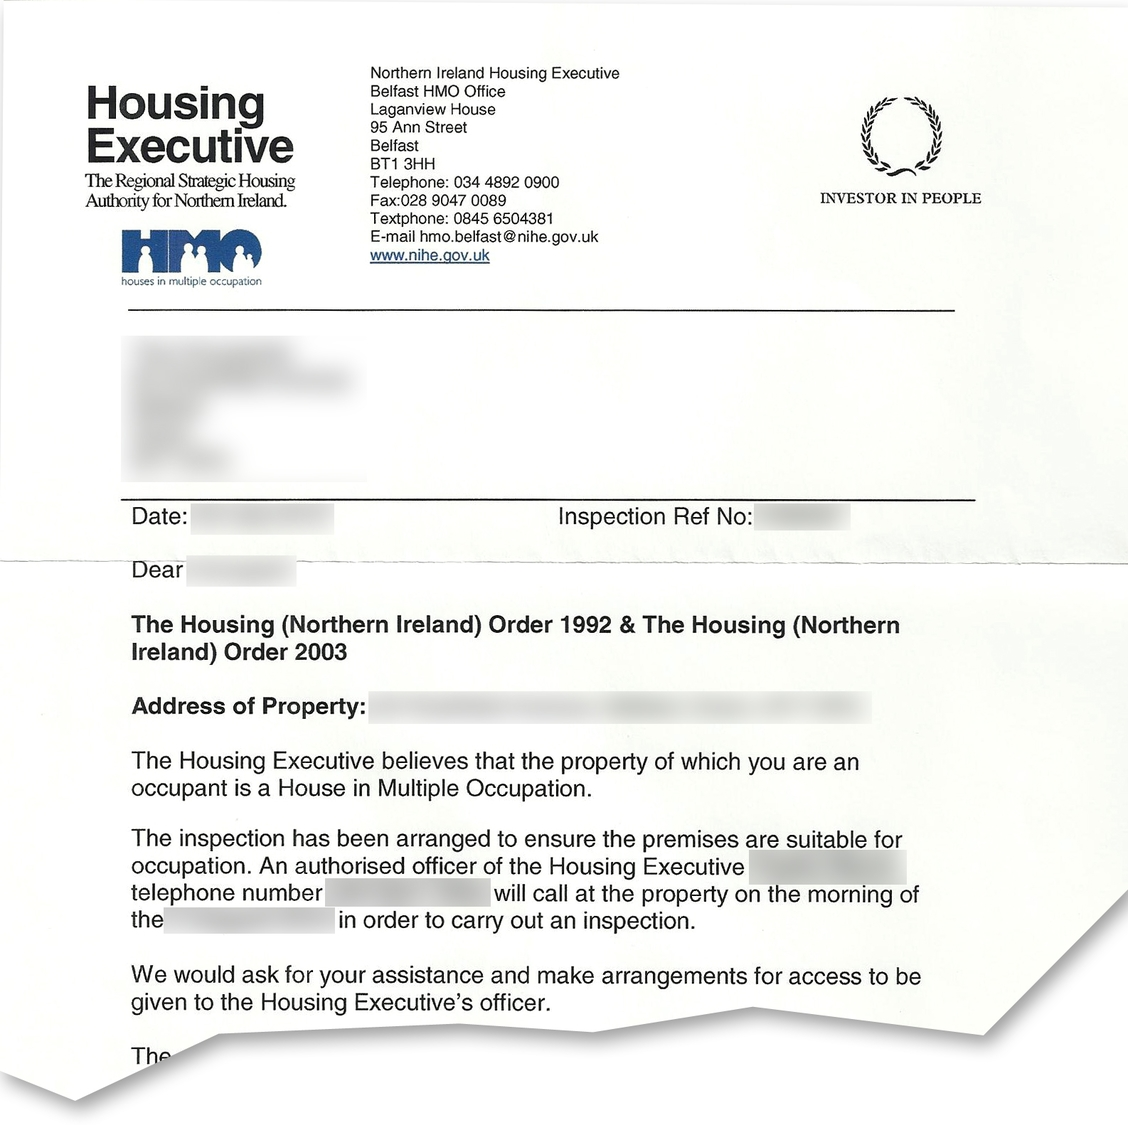 The NIHE will notify tenants and landlords of an inspection required to confirm an HMO